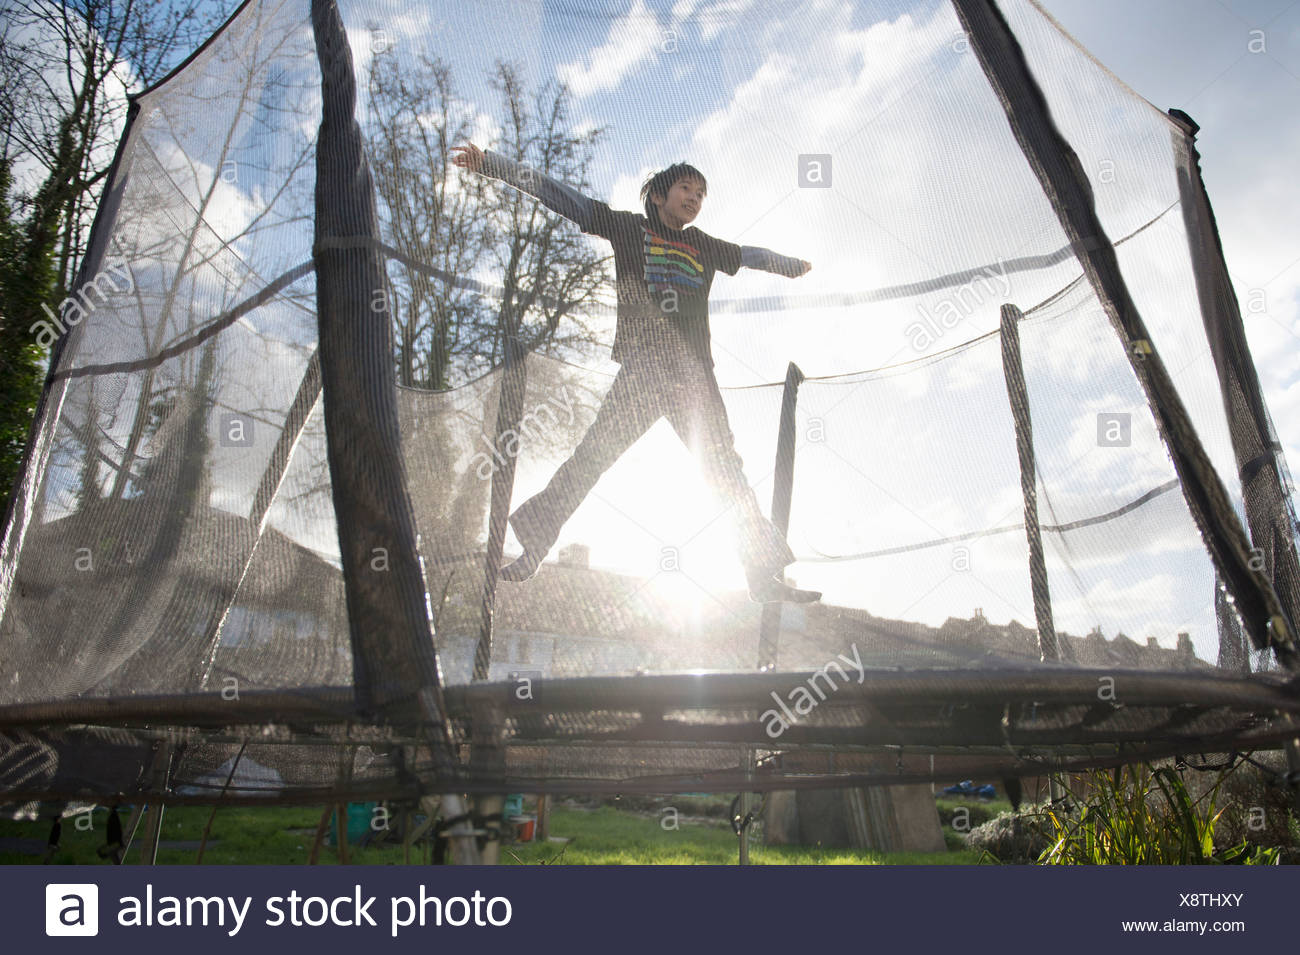 Boy jumping on outdoor trampoline - Stock Image